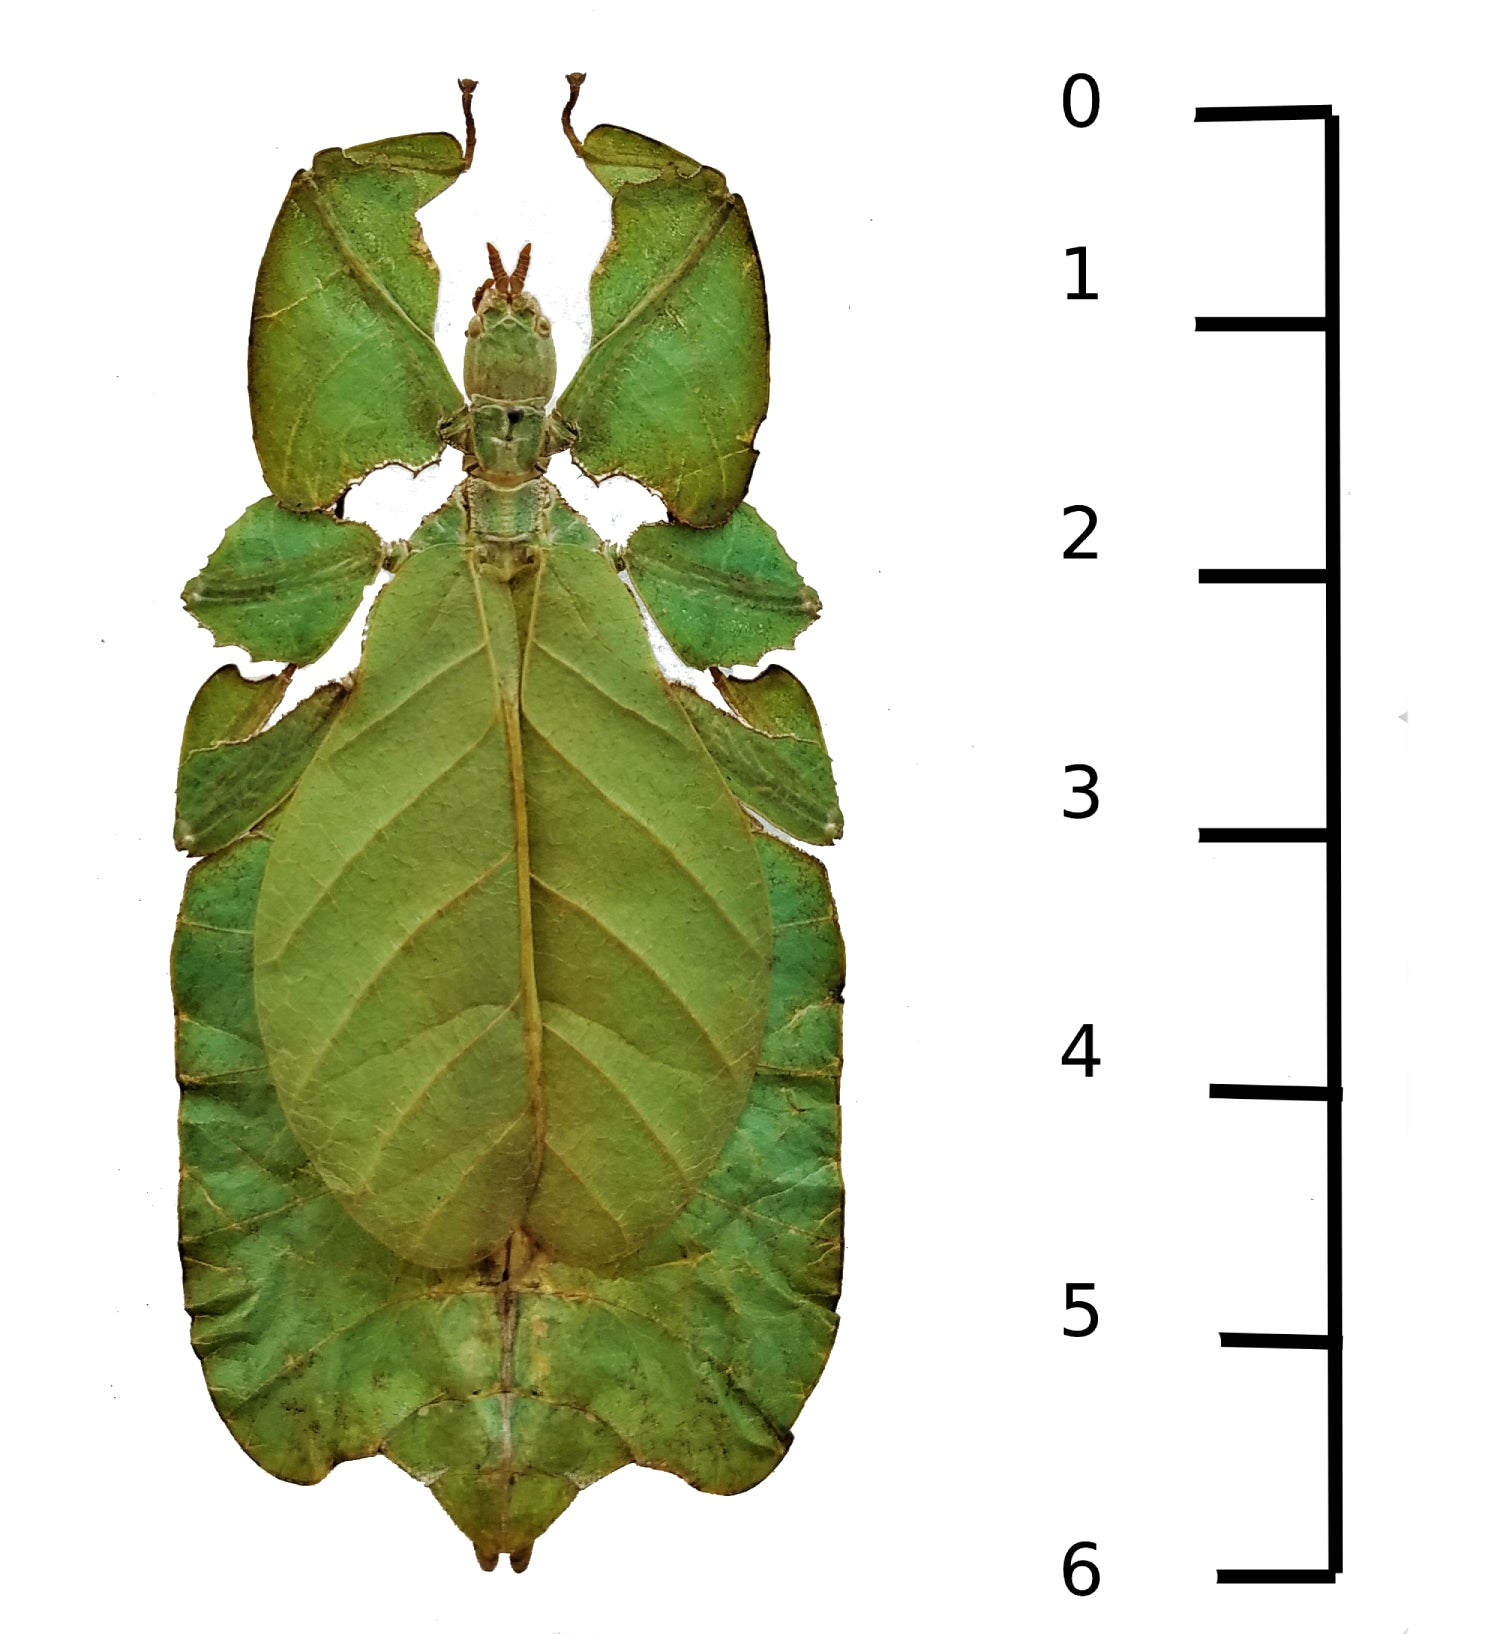 Phyllium giganteum leaf insect for sale